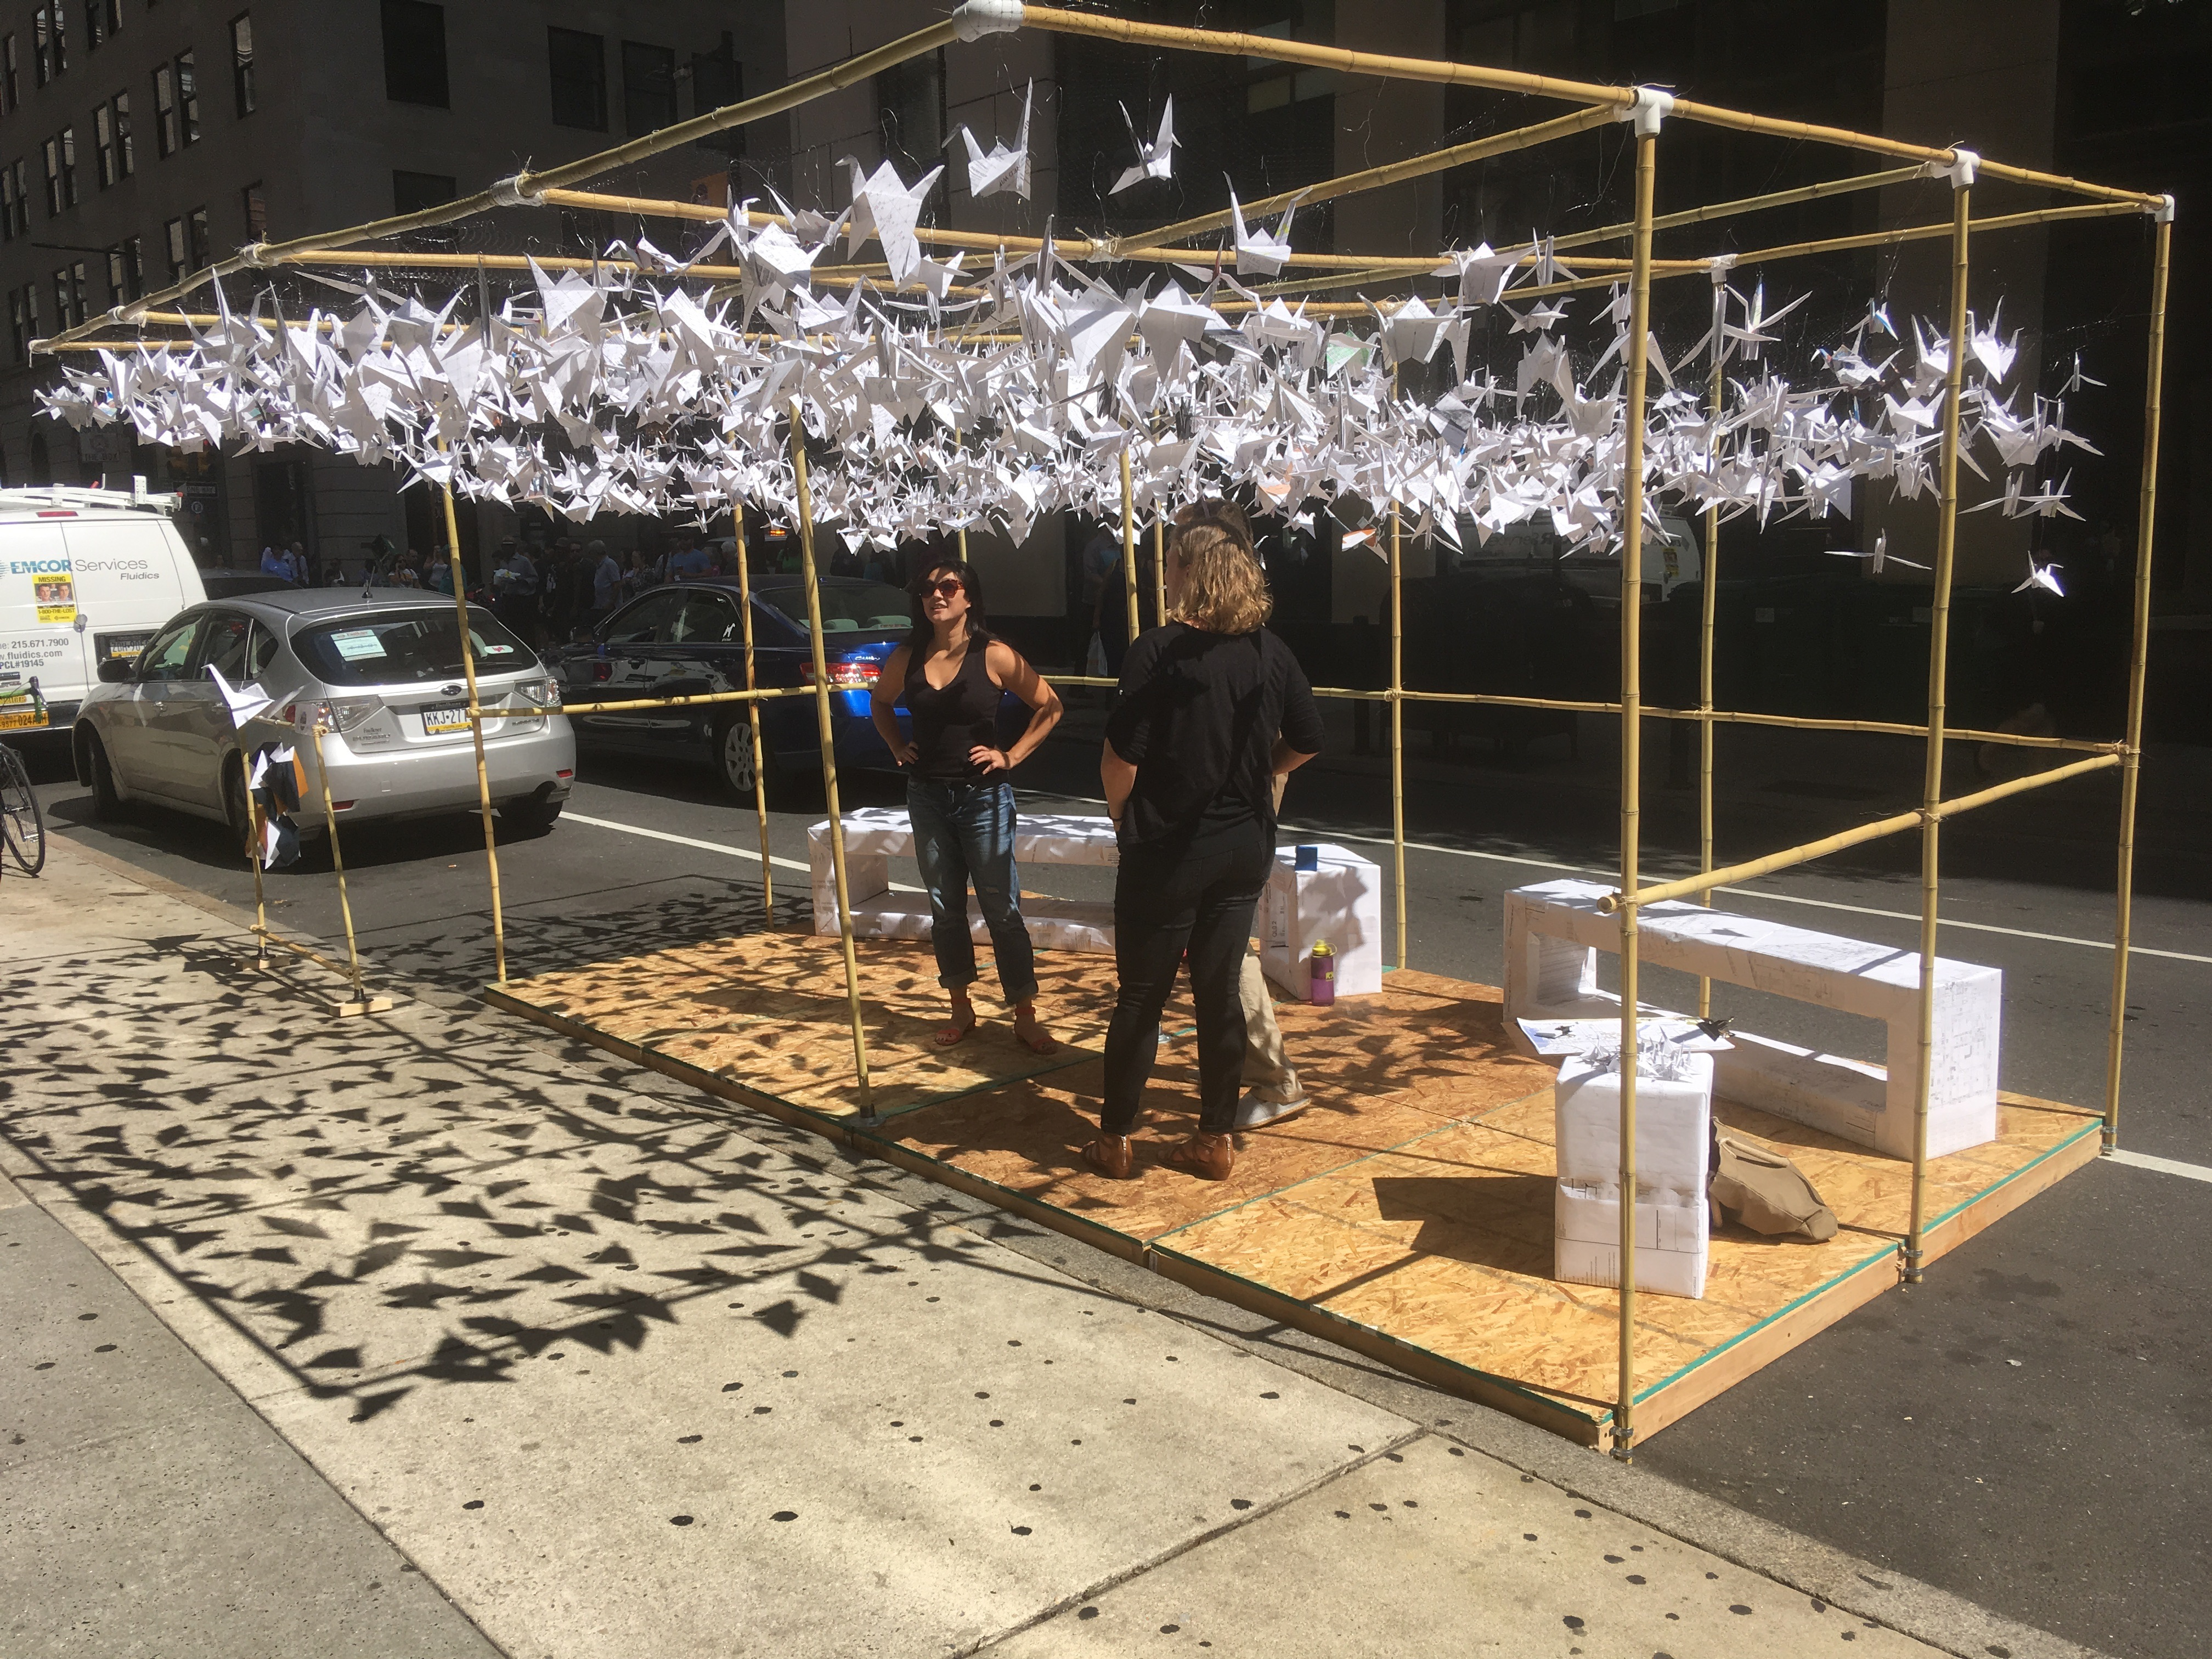 Park(ing) Day was for the birds at SMP Architect's installation at 16th and Chestnut